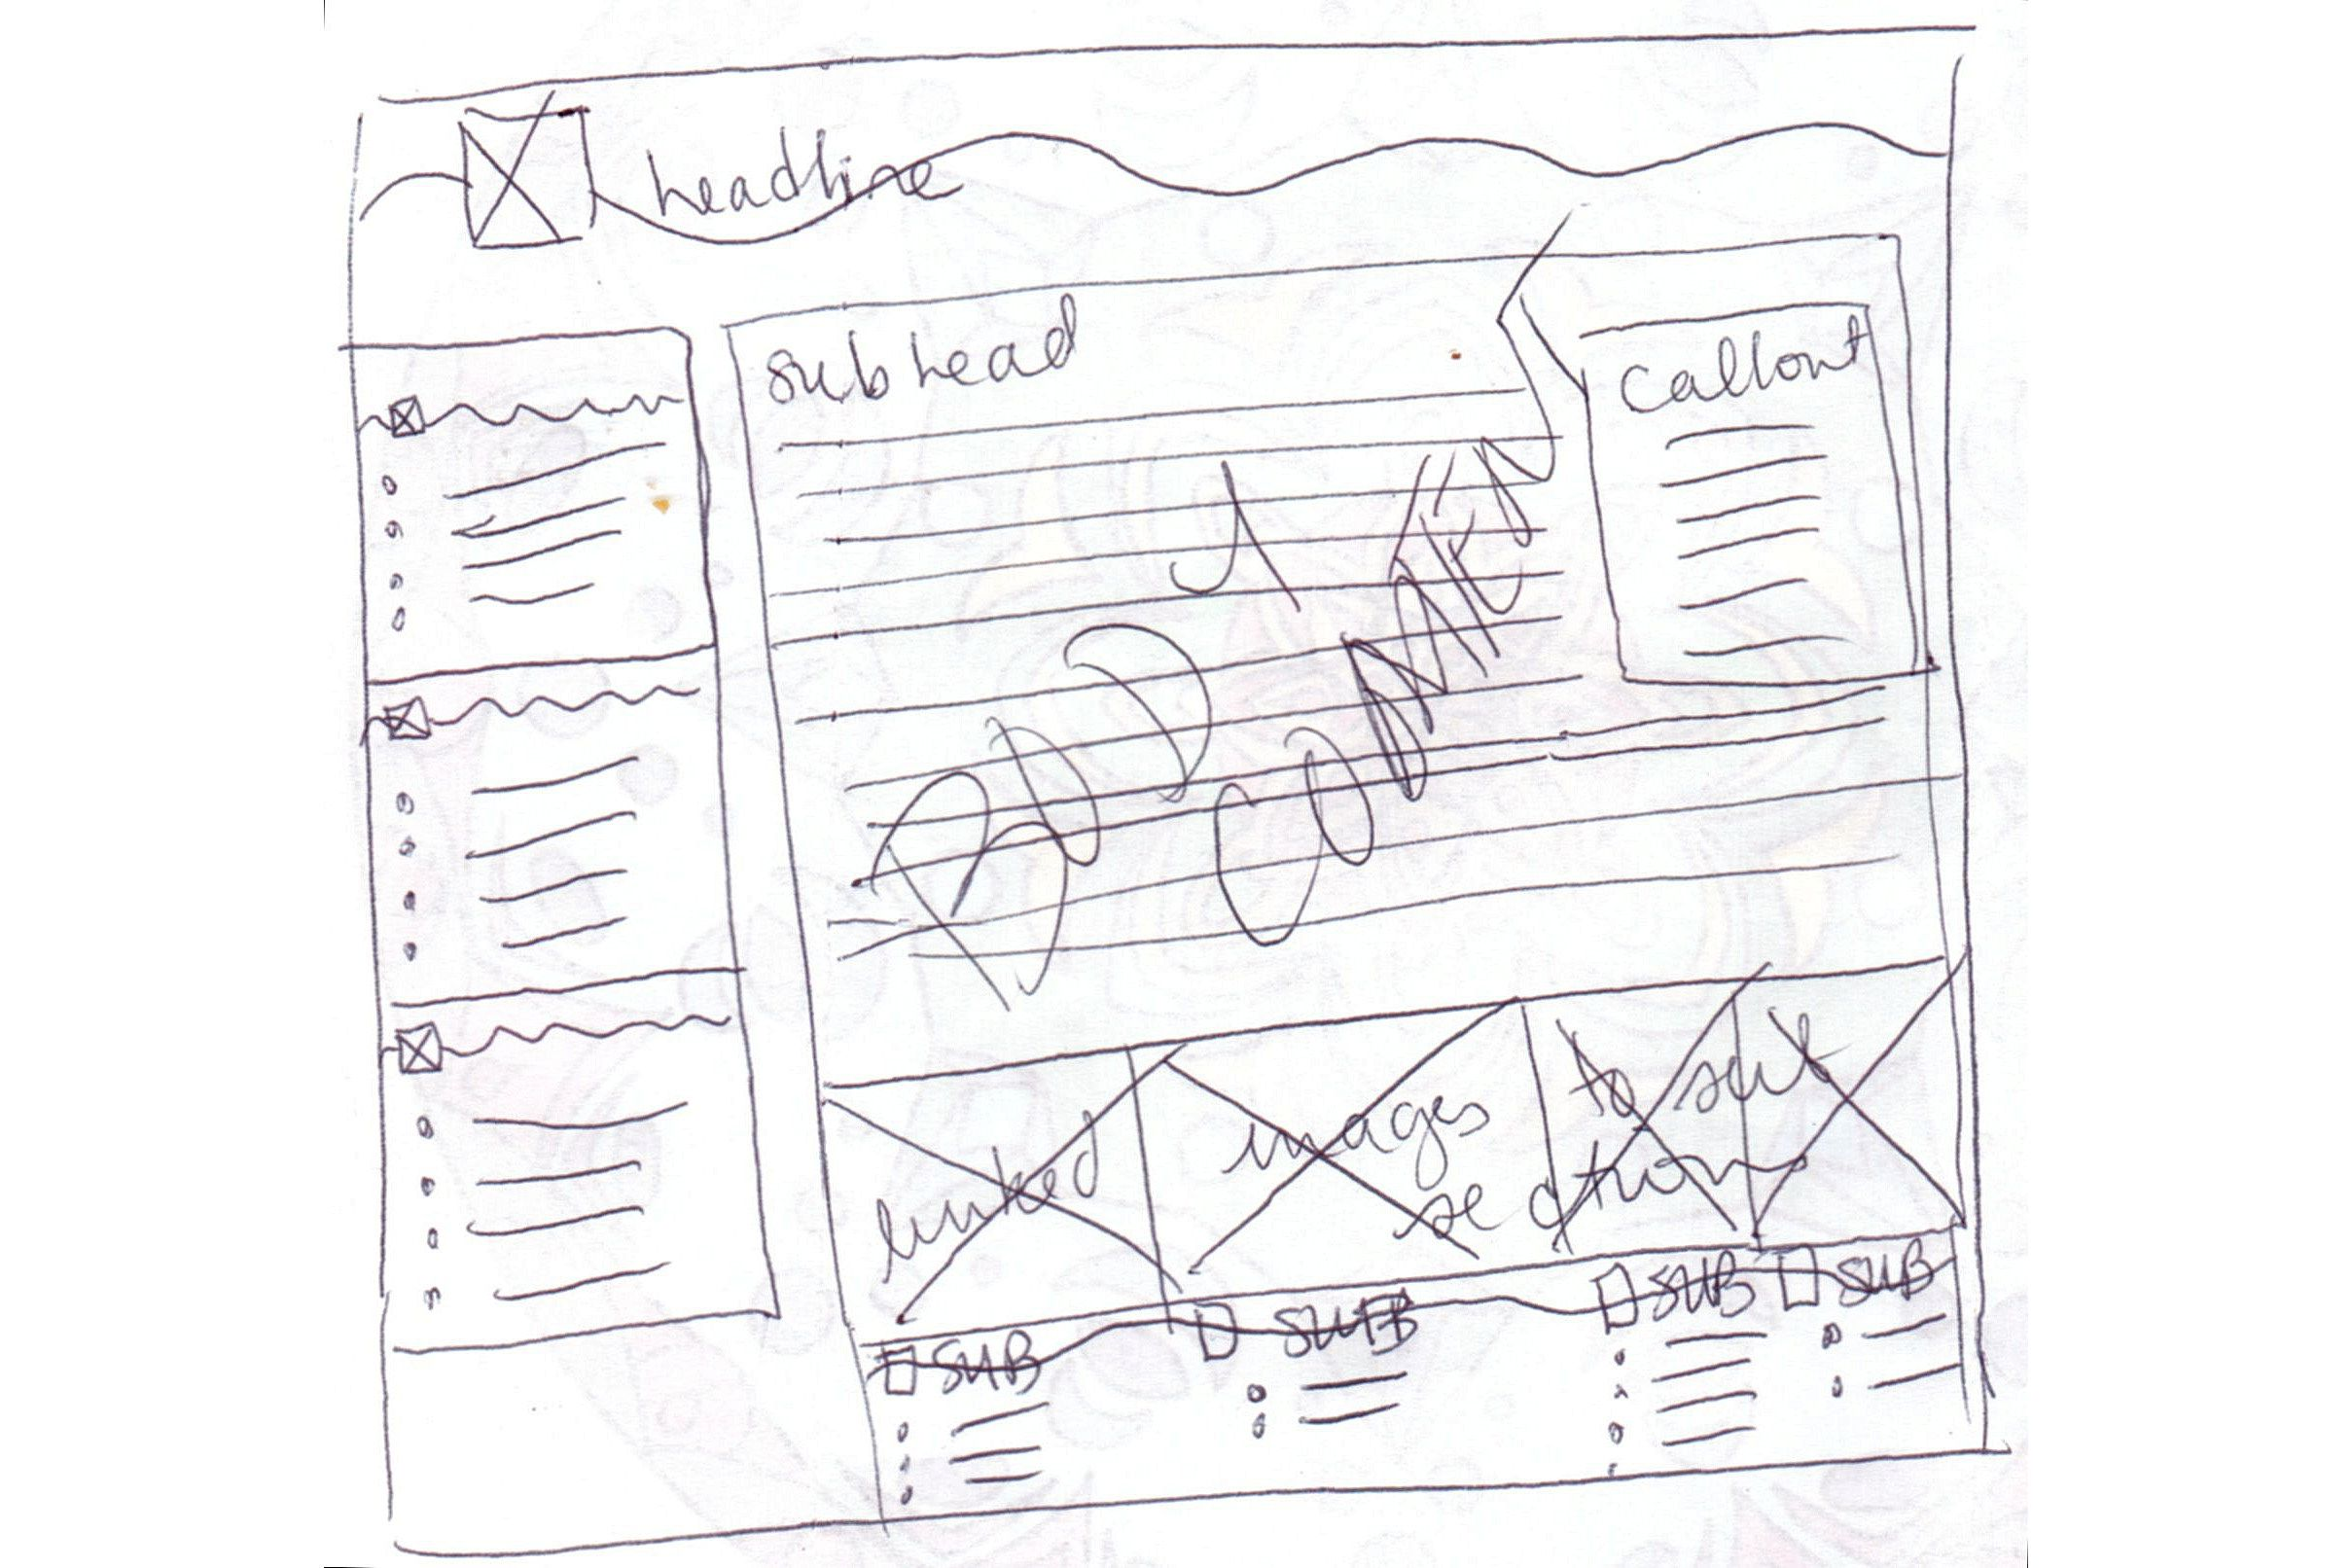 Web Design: Website Wireframe